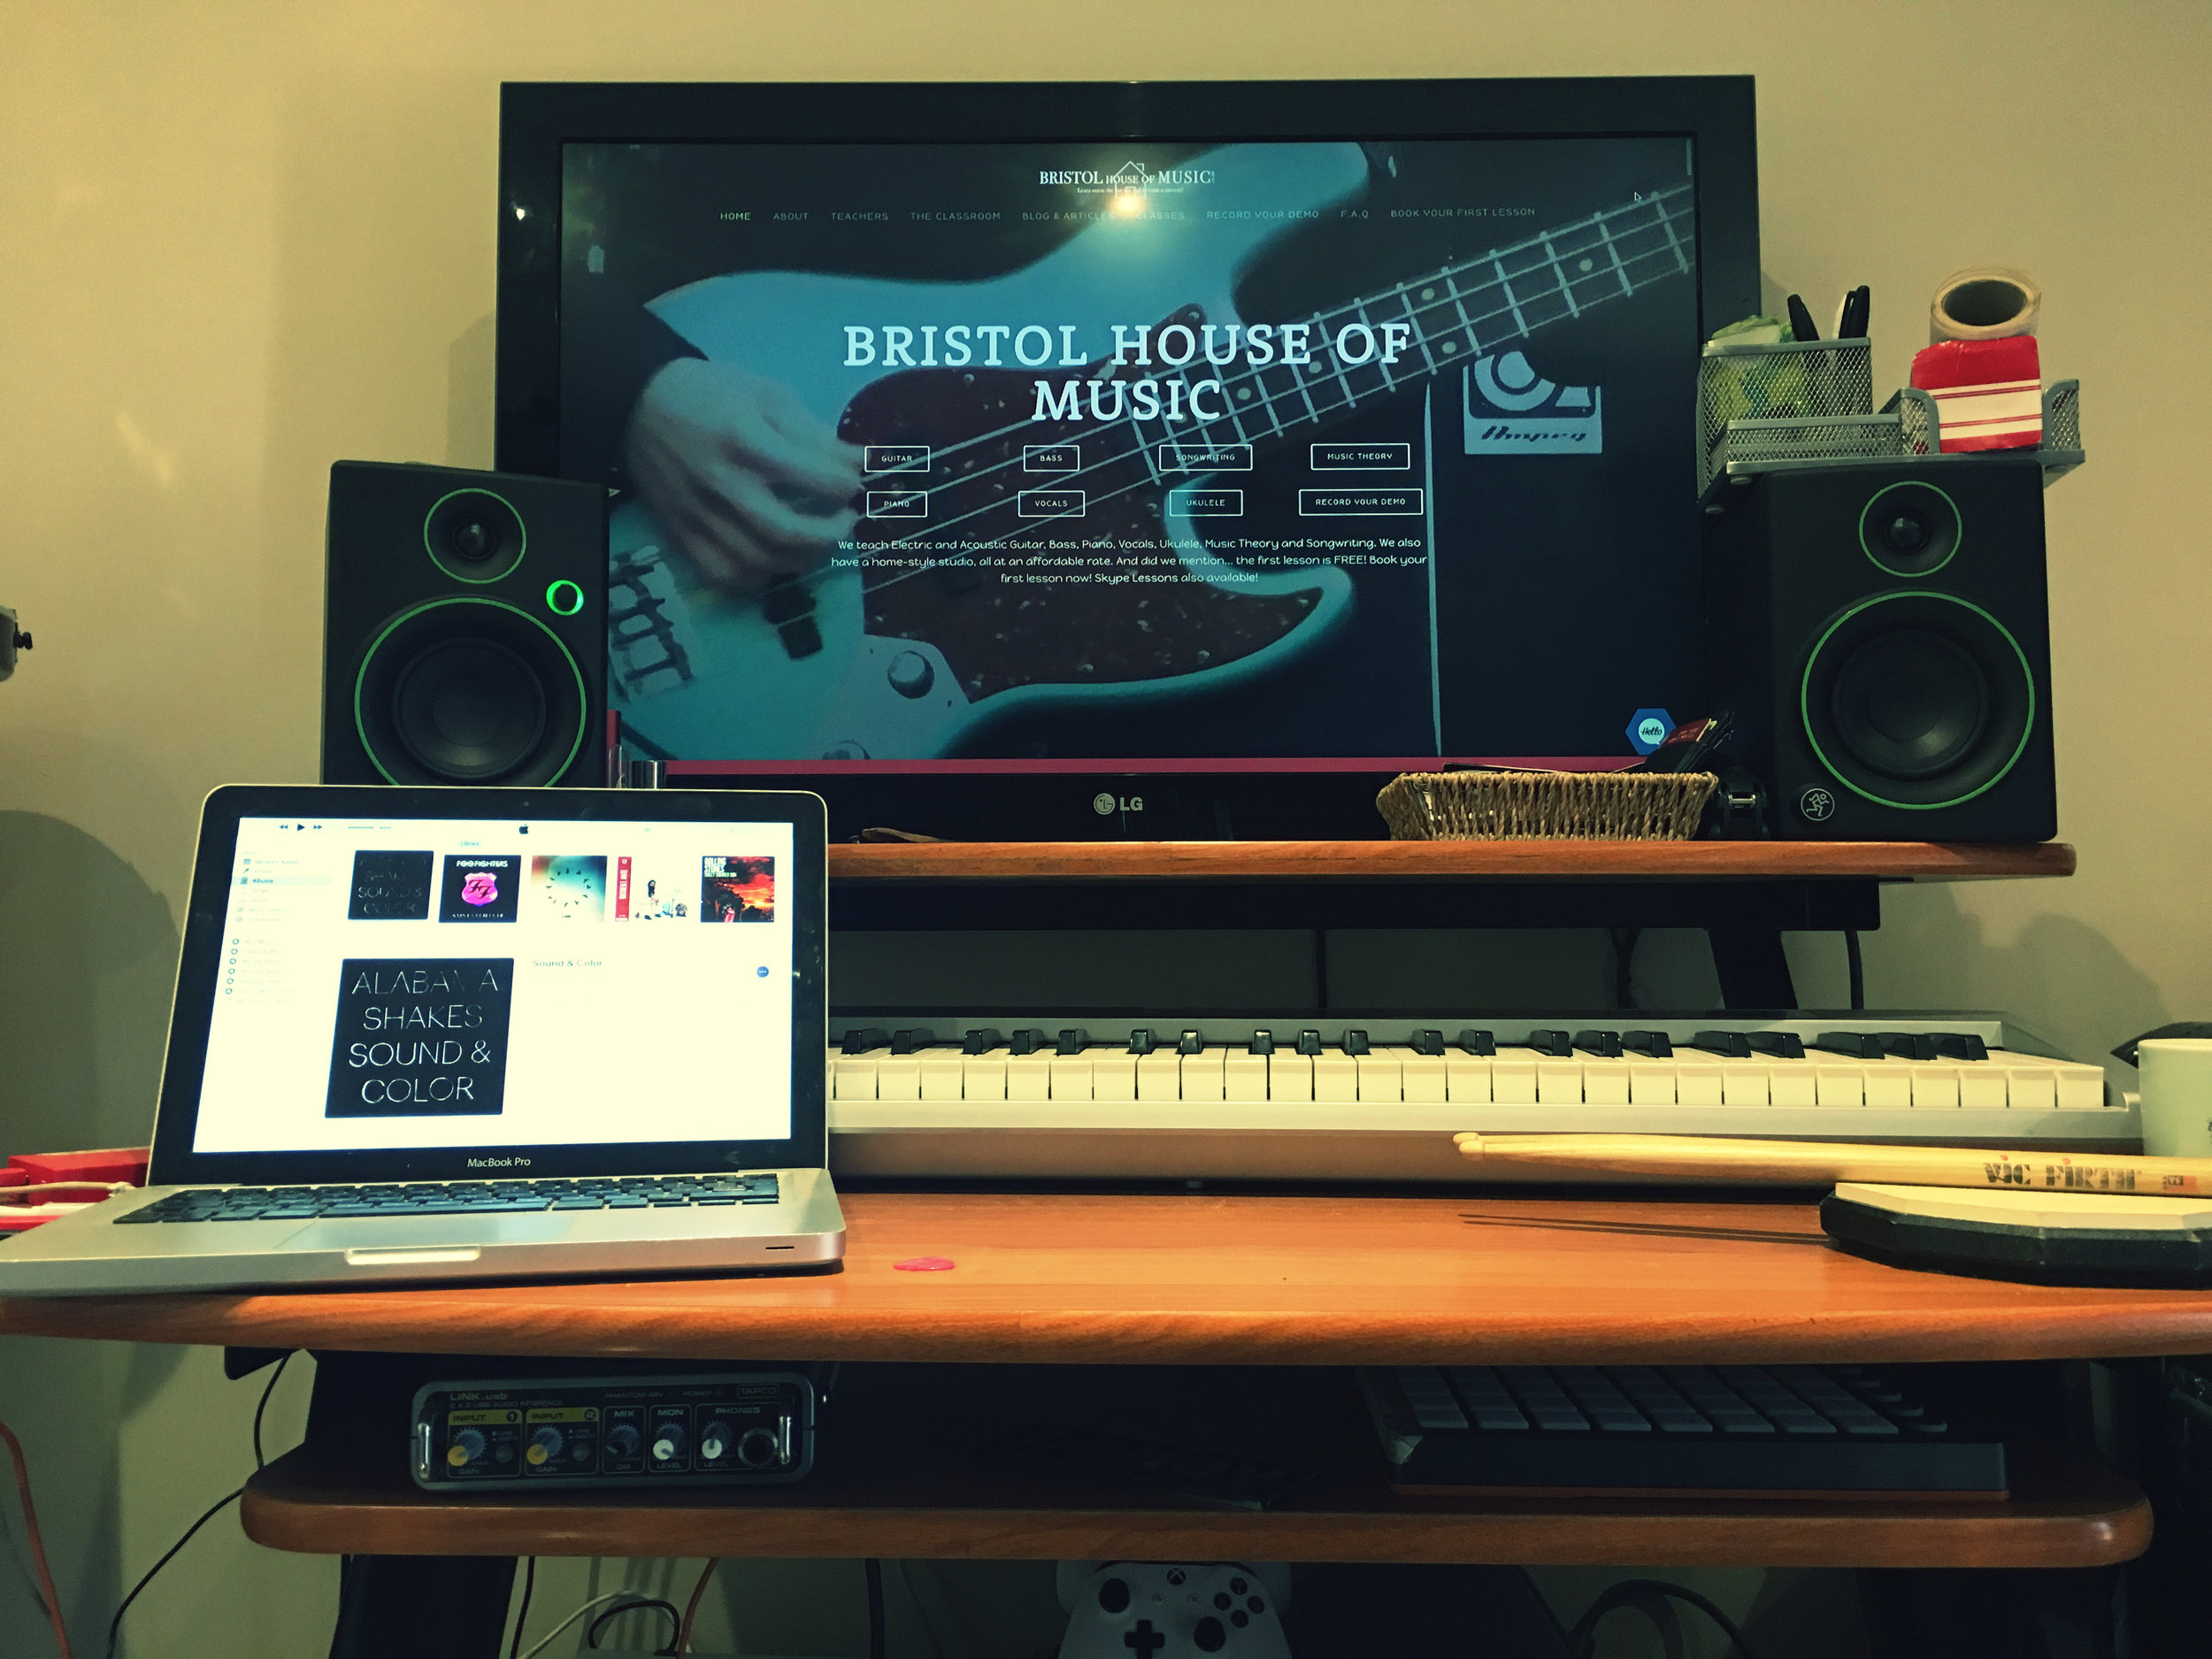 Macbook set up with monitor speakers, midi keyboard, audio interface, big screen, Logic Pro with recording capabilities good to go!